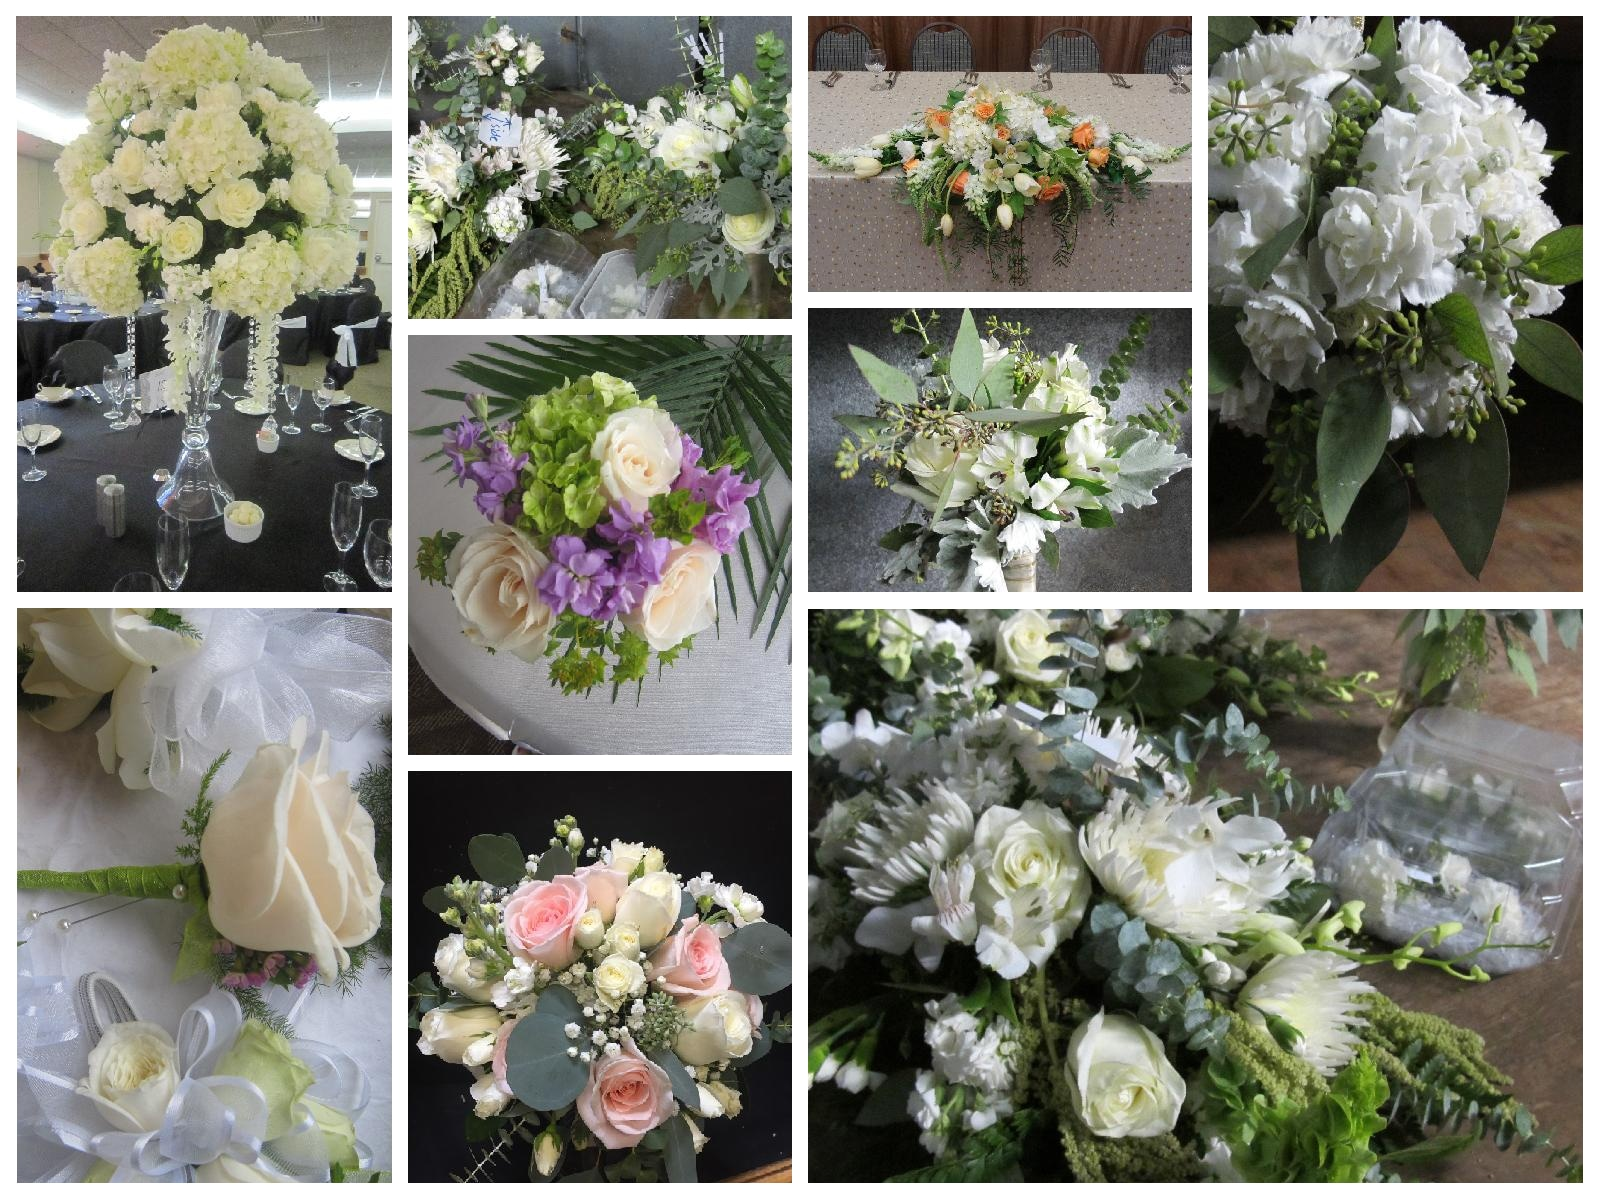 collage example of green and white wedding arrangements